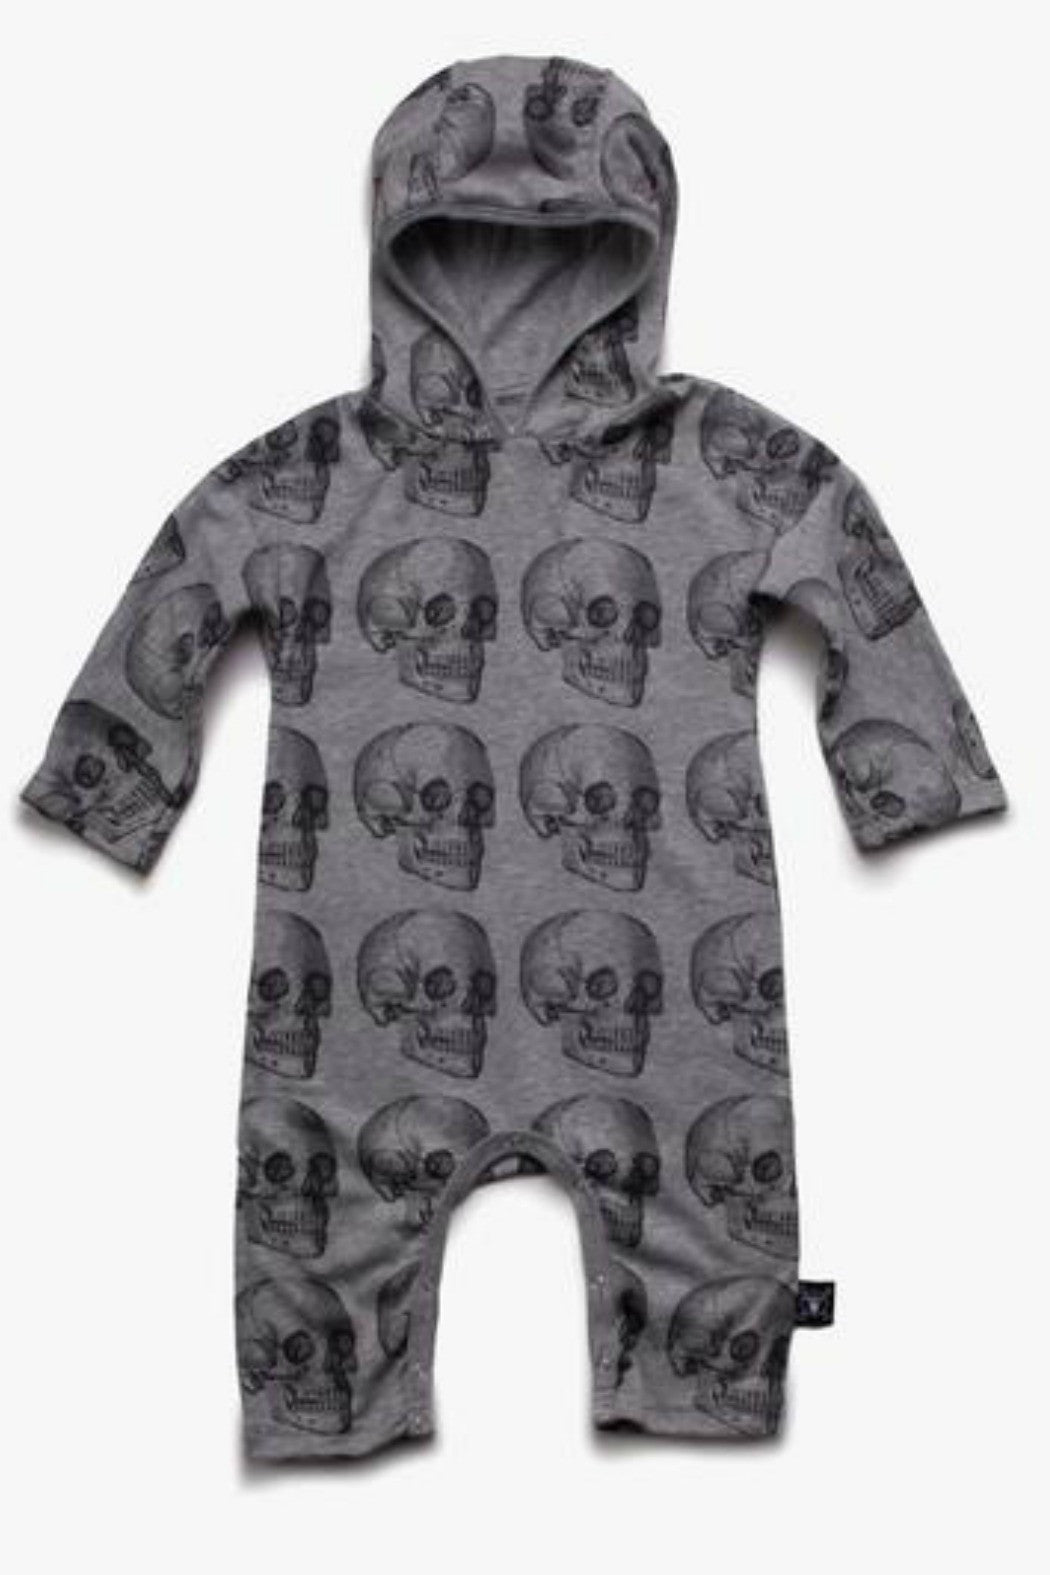 Nu Nu Nu- Skull Playsuit in Grey - R+D Hipster Emporium | Womens & Mens Clothing